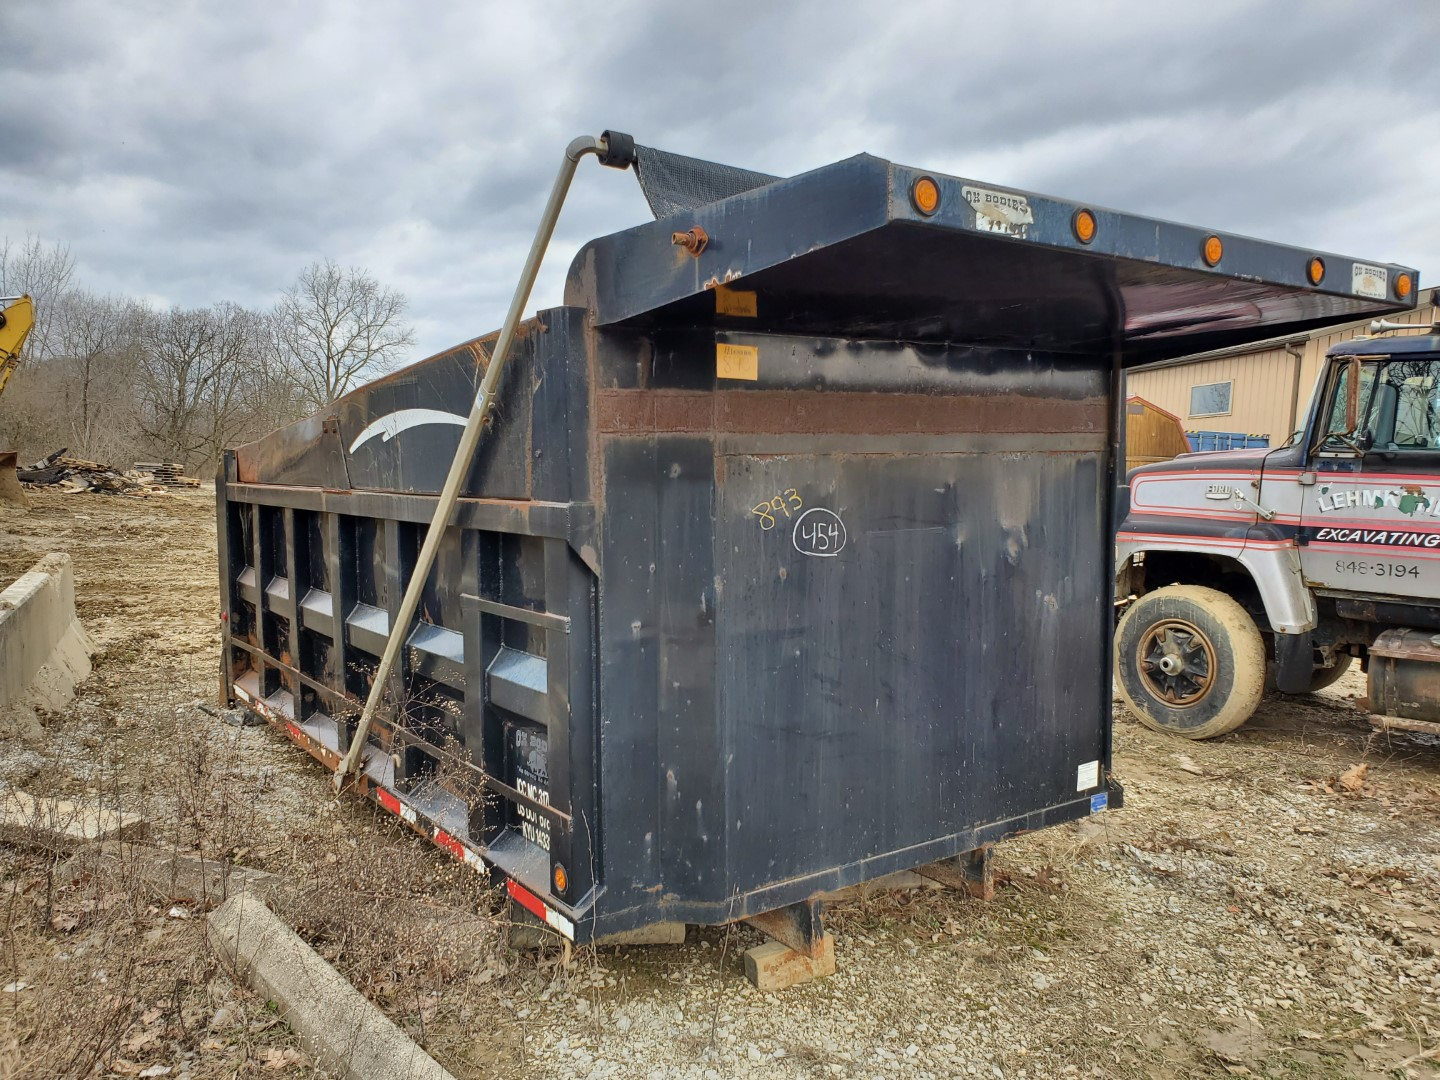 Oxbodies 16 ft, 17-19 Yard Dump Bed w/ Tarp System, Loading Fee, $350 - Image 4 of 6